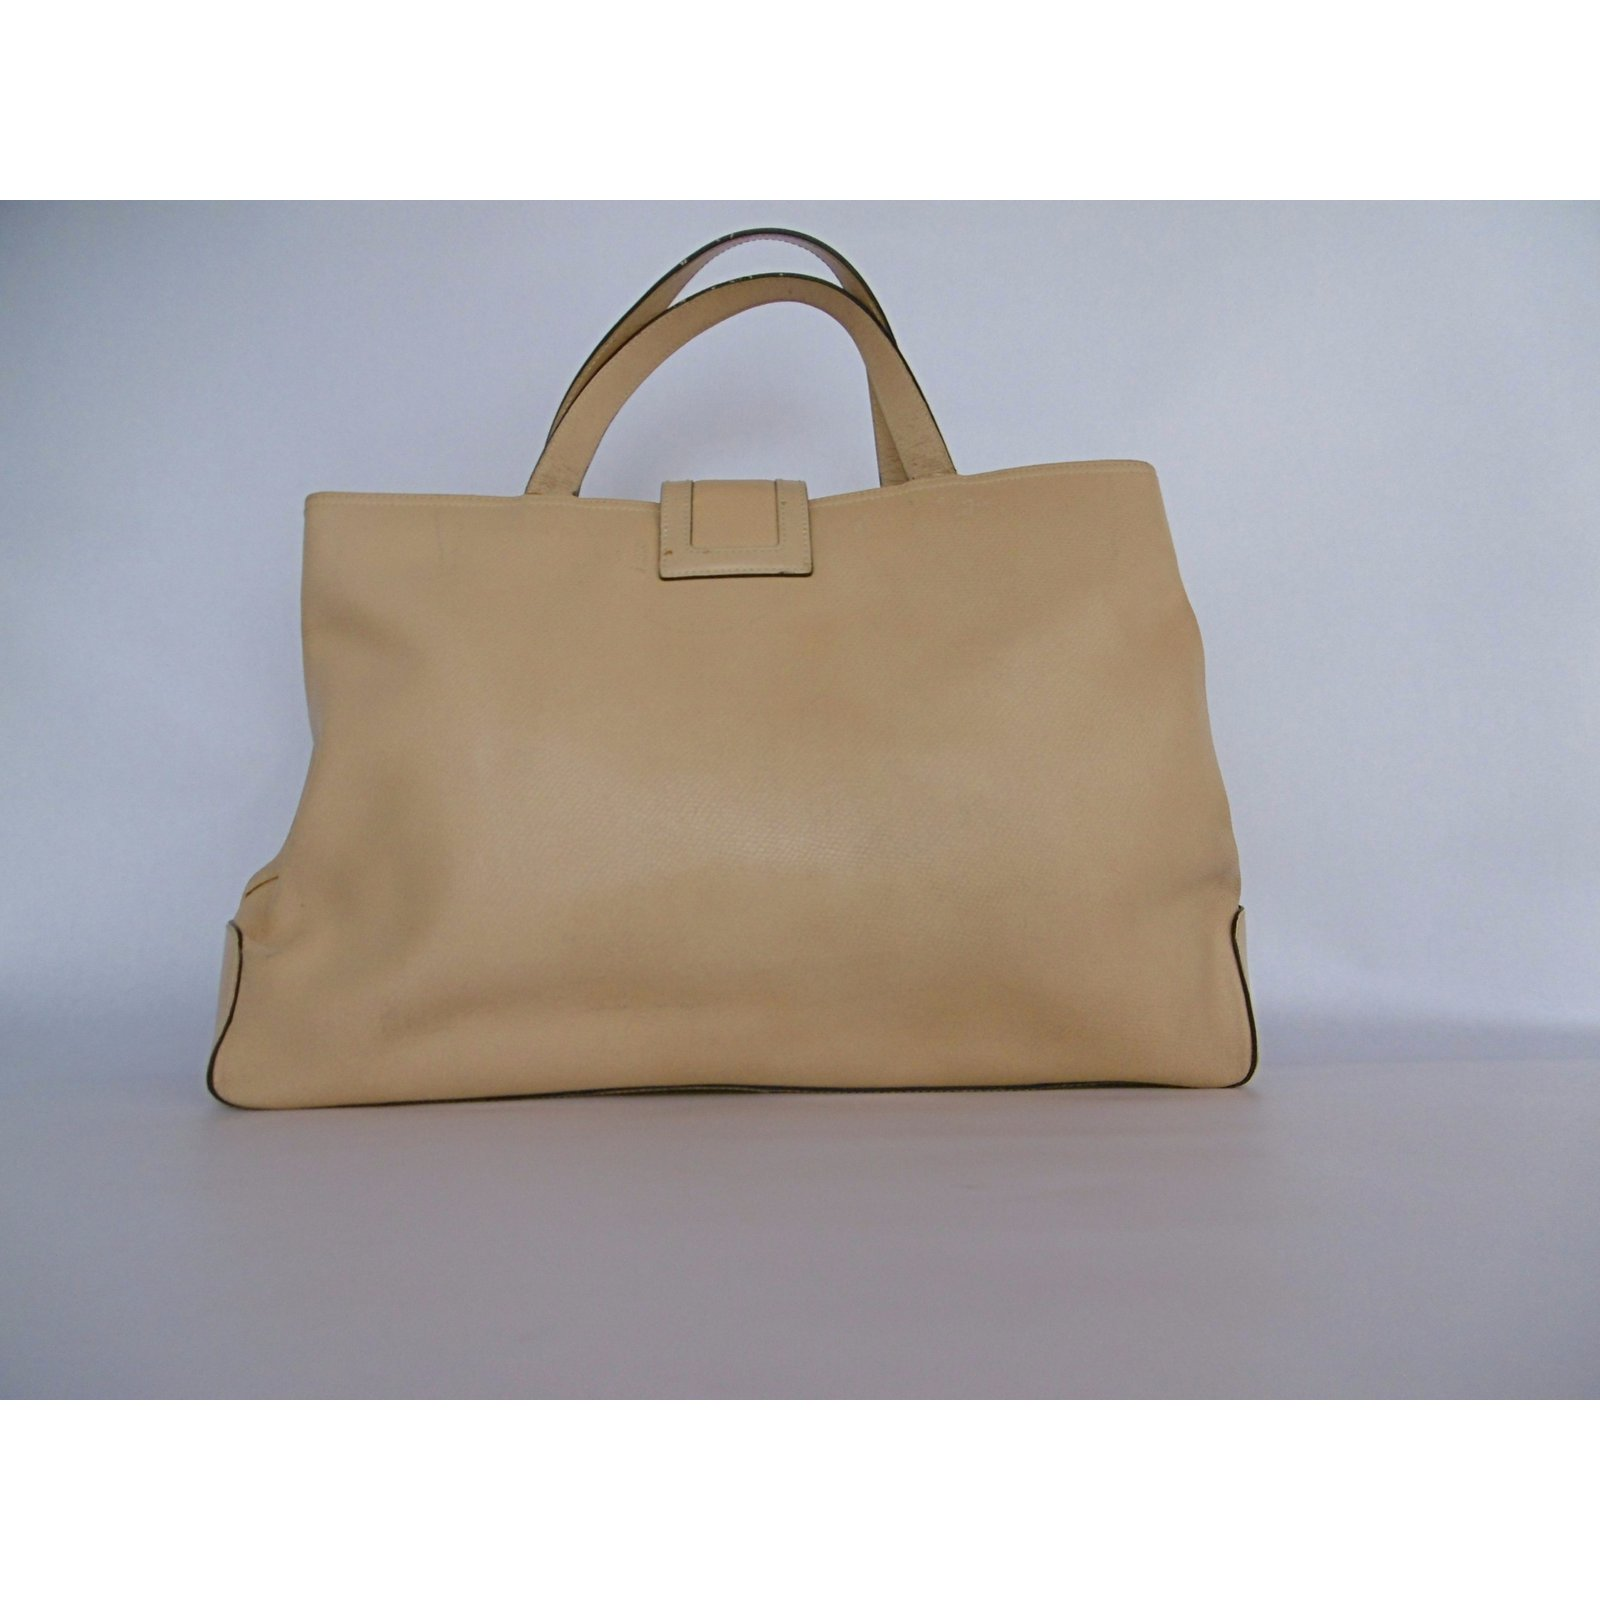 0cc8714638 Givenchy Givenchy Leather Tote Hand Bag Handbags Leather Beige ref.42568 -  Joli Closet